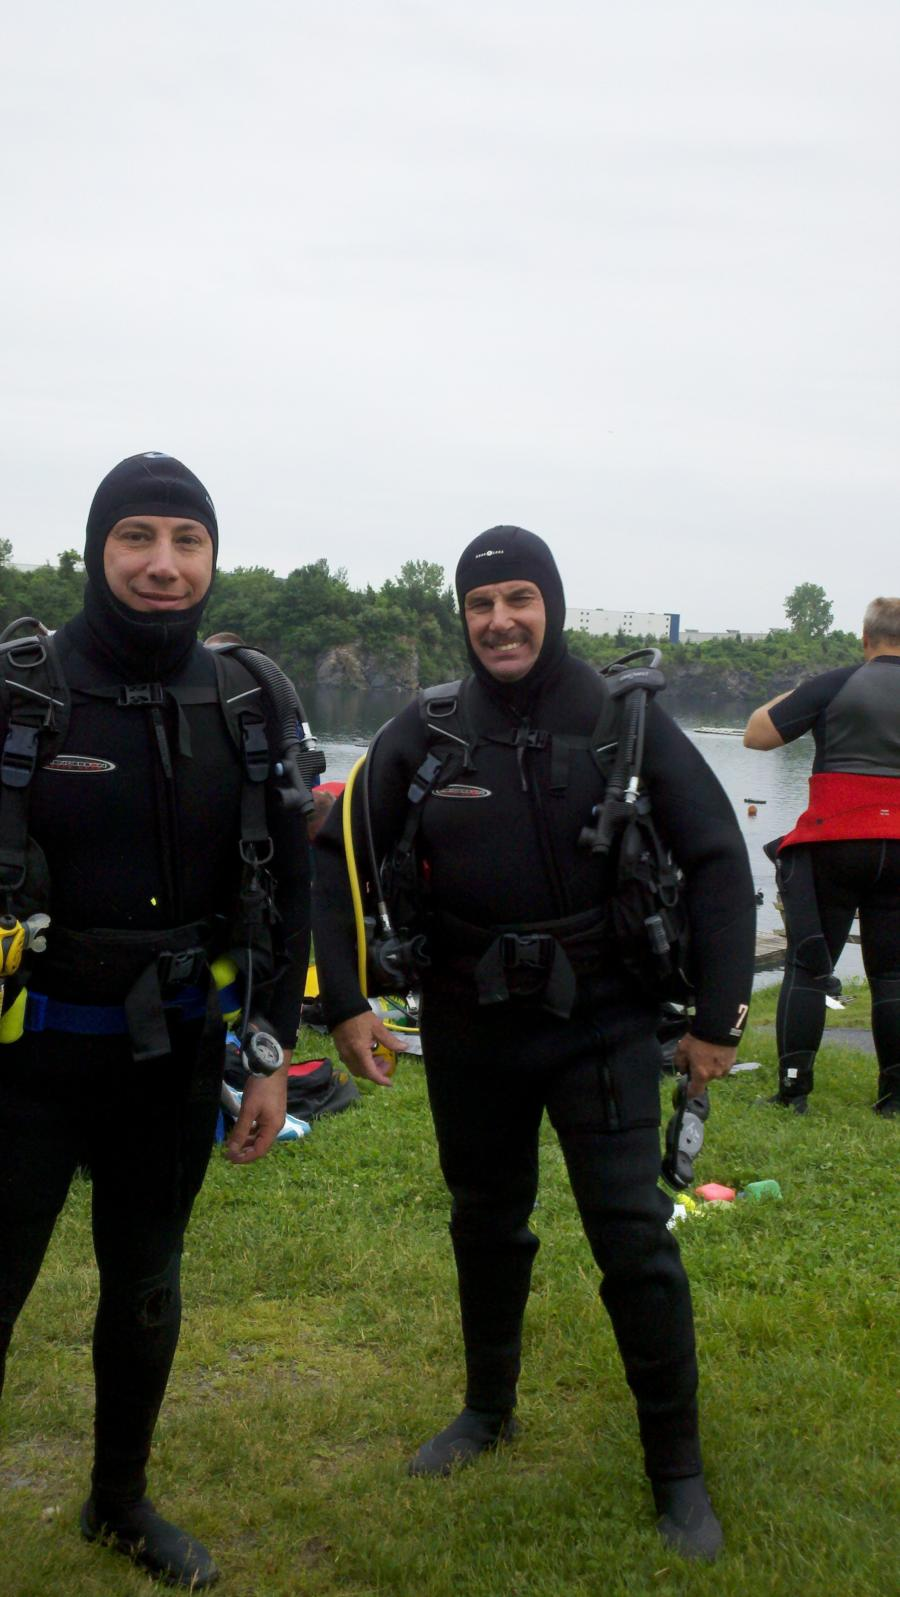 With my Buddy Tim after Rescue Dives (Dutch Springs, PA)